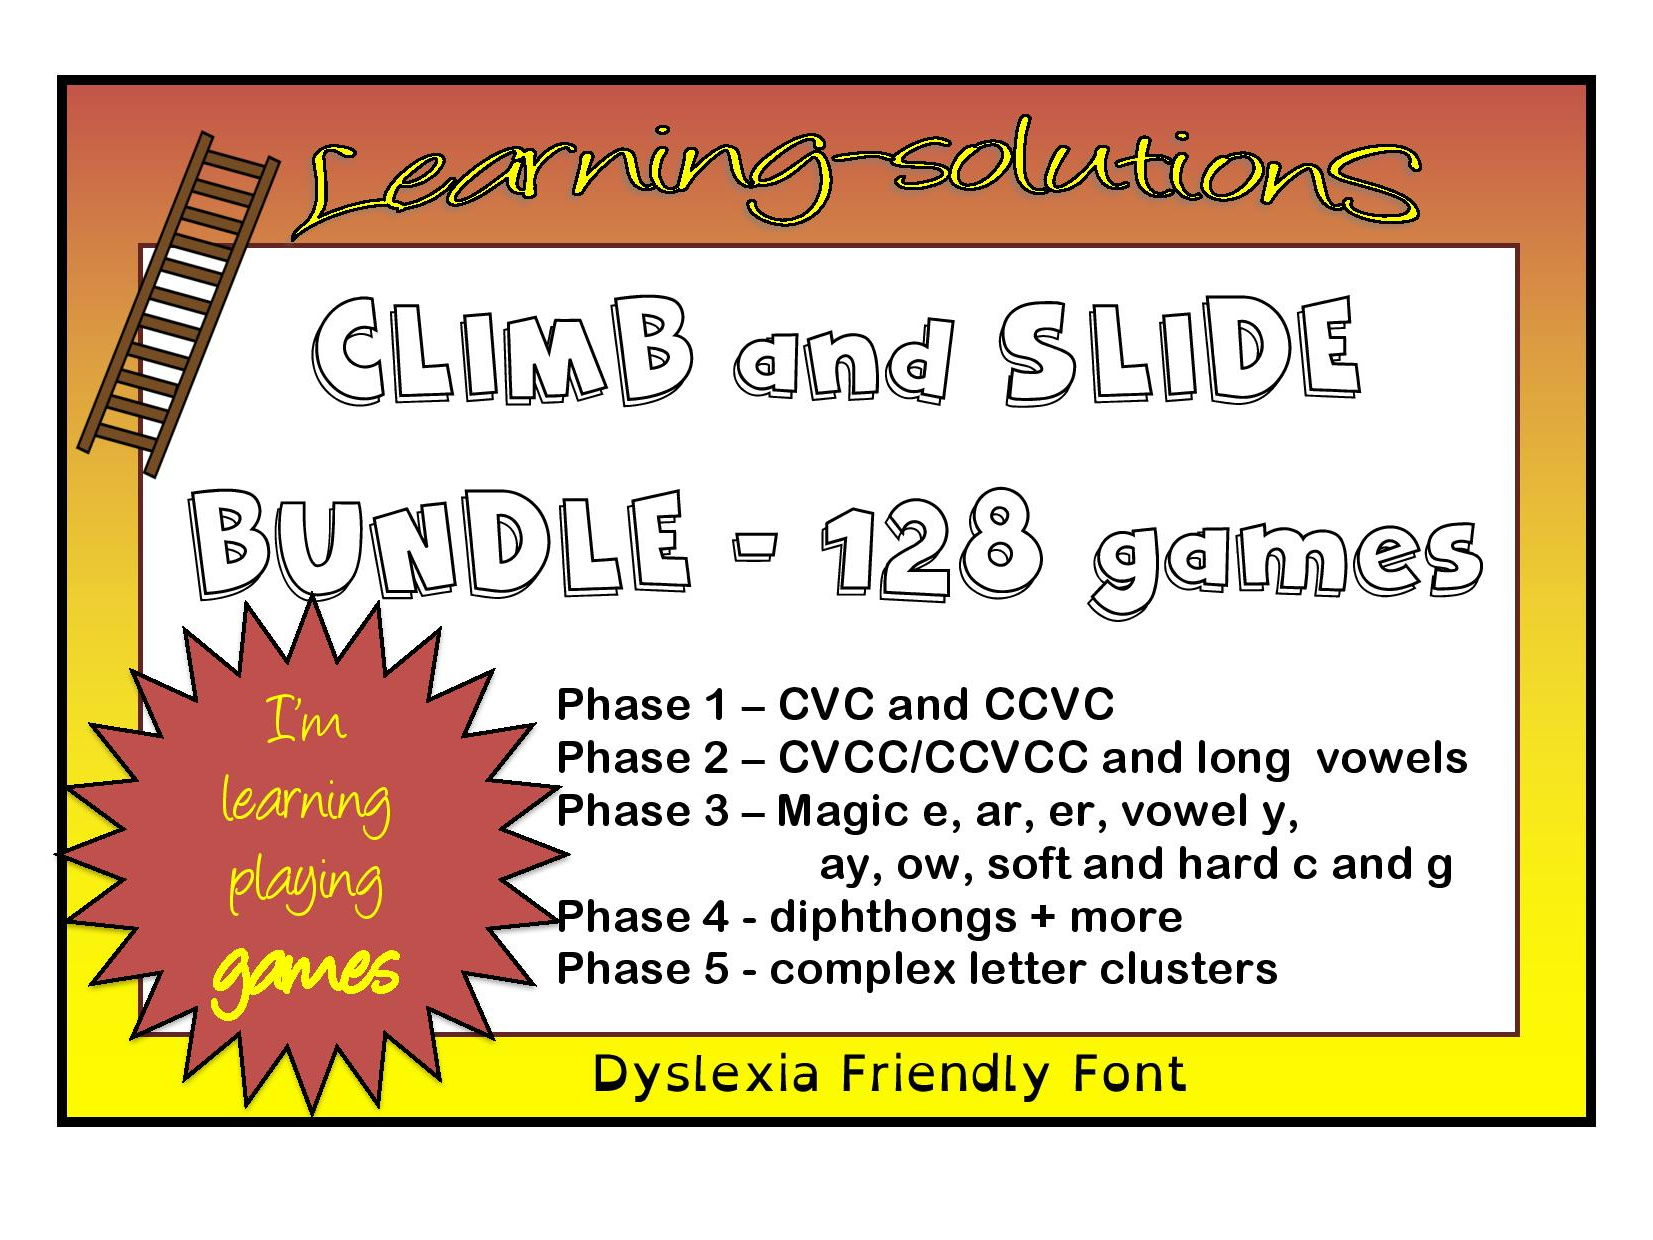 CLIMB and SLIDE BOARD GAMES BUNDLE - Phonics - Phases 1 to 5 - 128 games